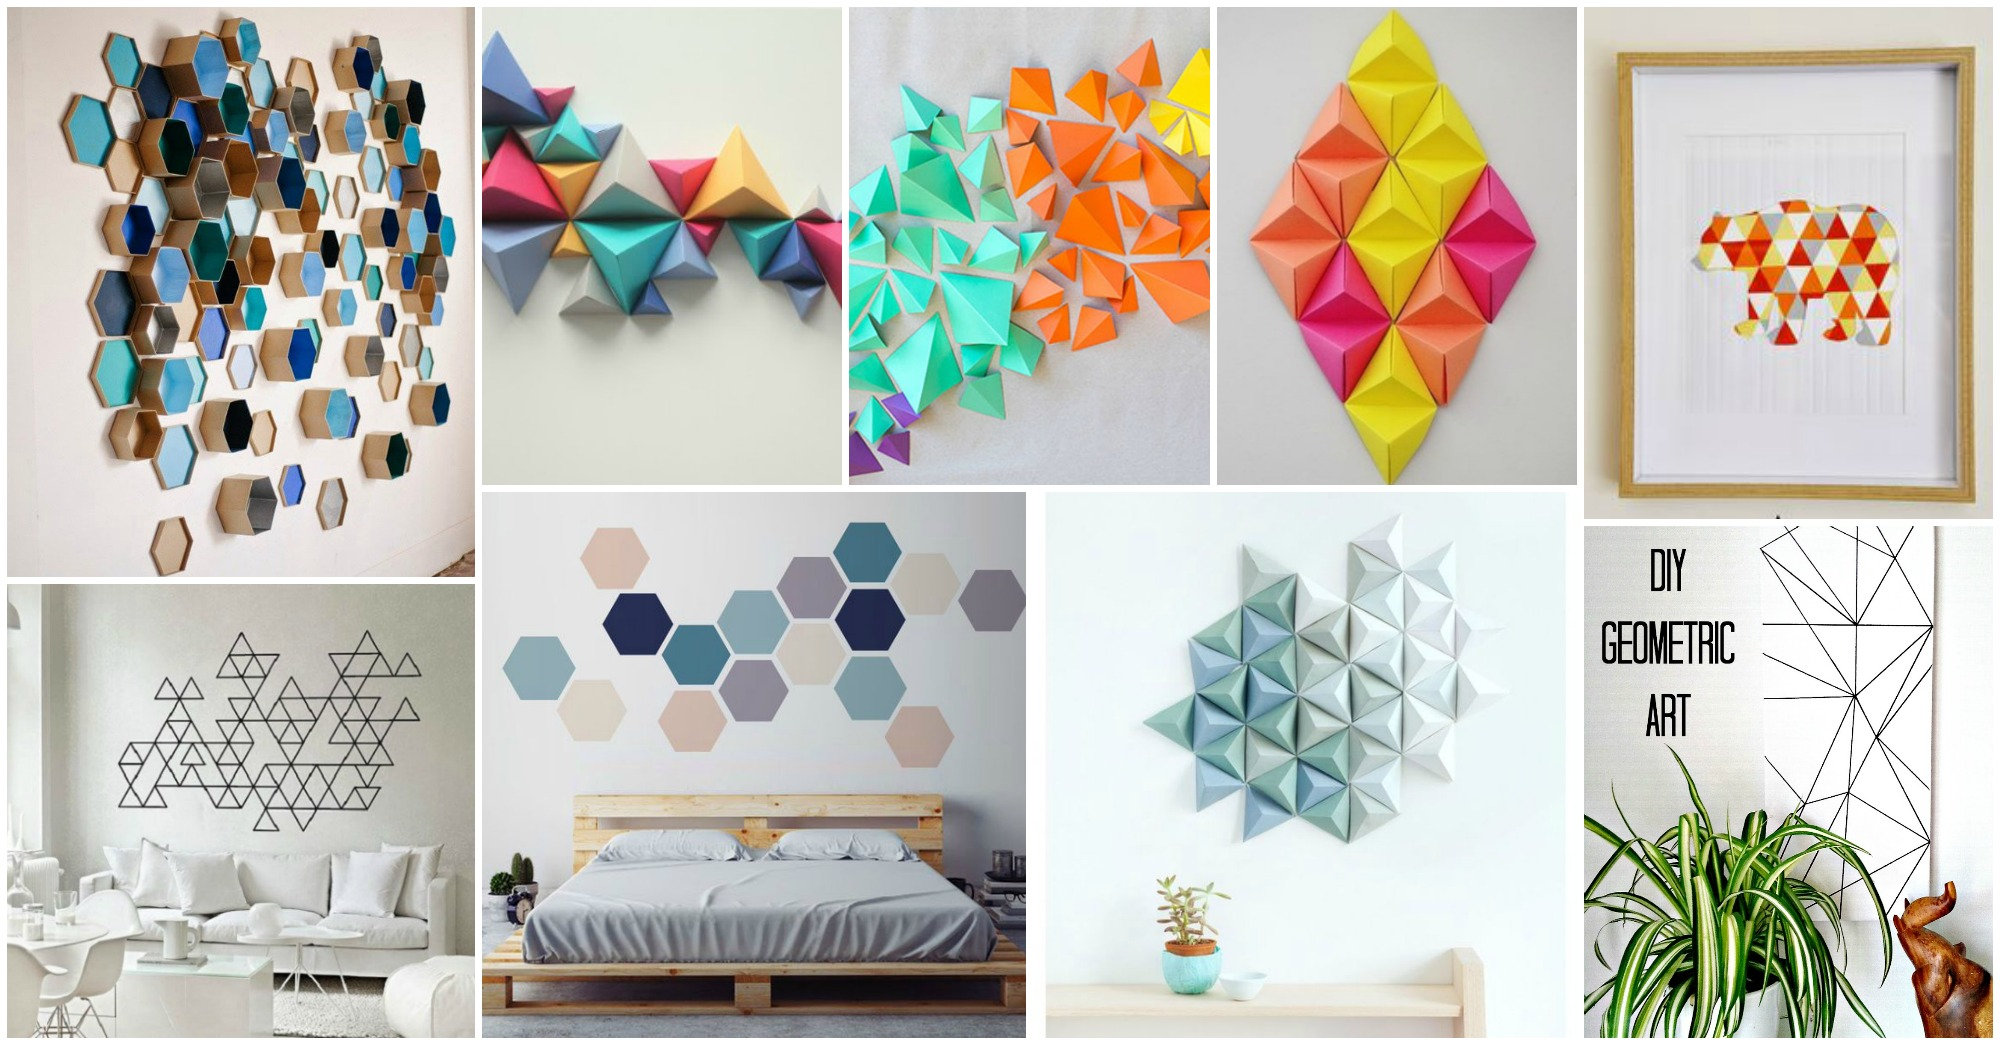 Contemporary Geometric Wall Art Crafts That Will Amaze You For Contemporary Geometric Wall Decor (View 7 of 30)